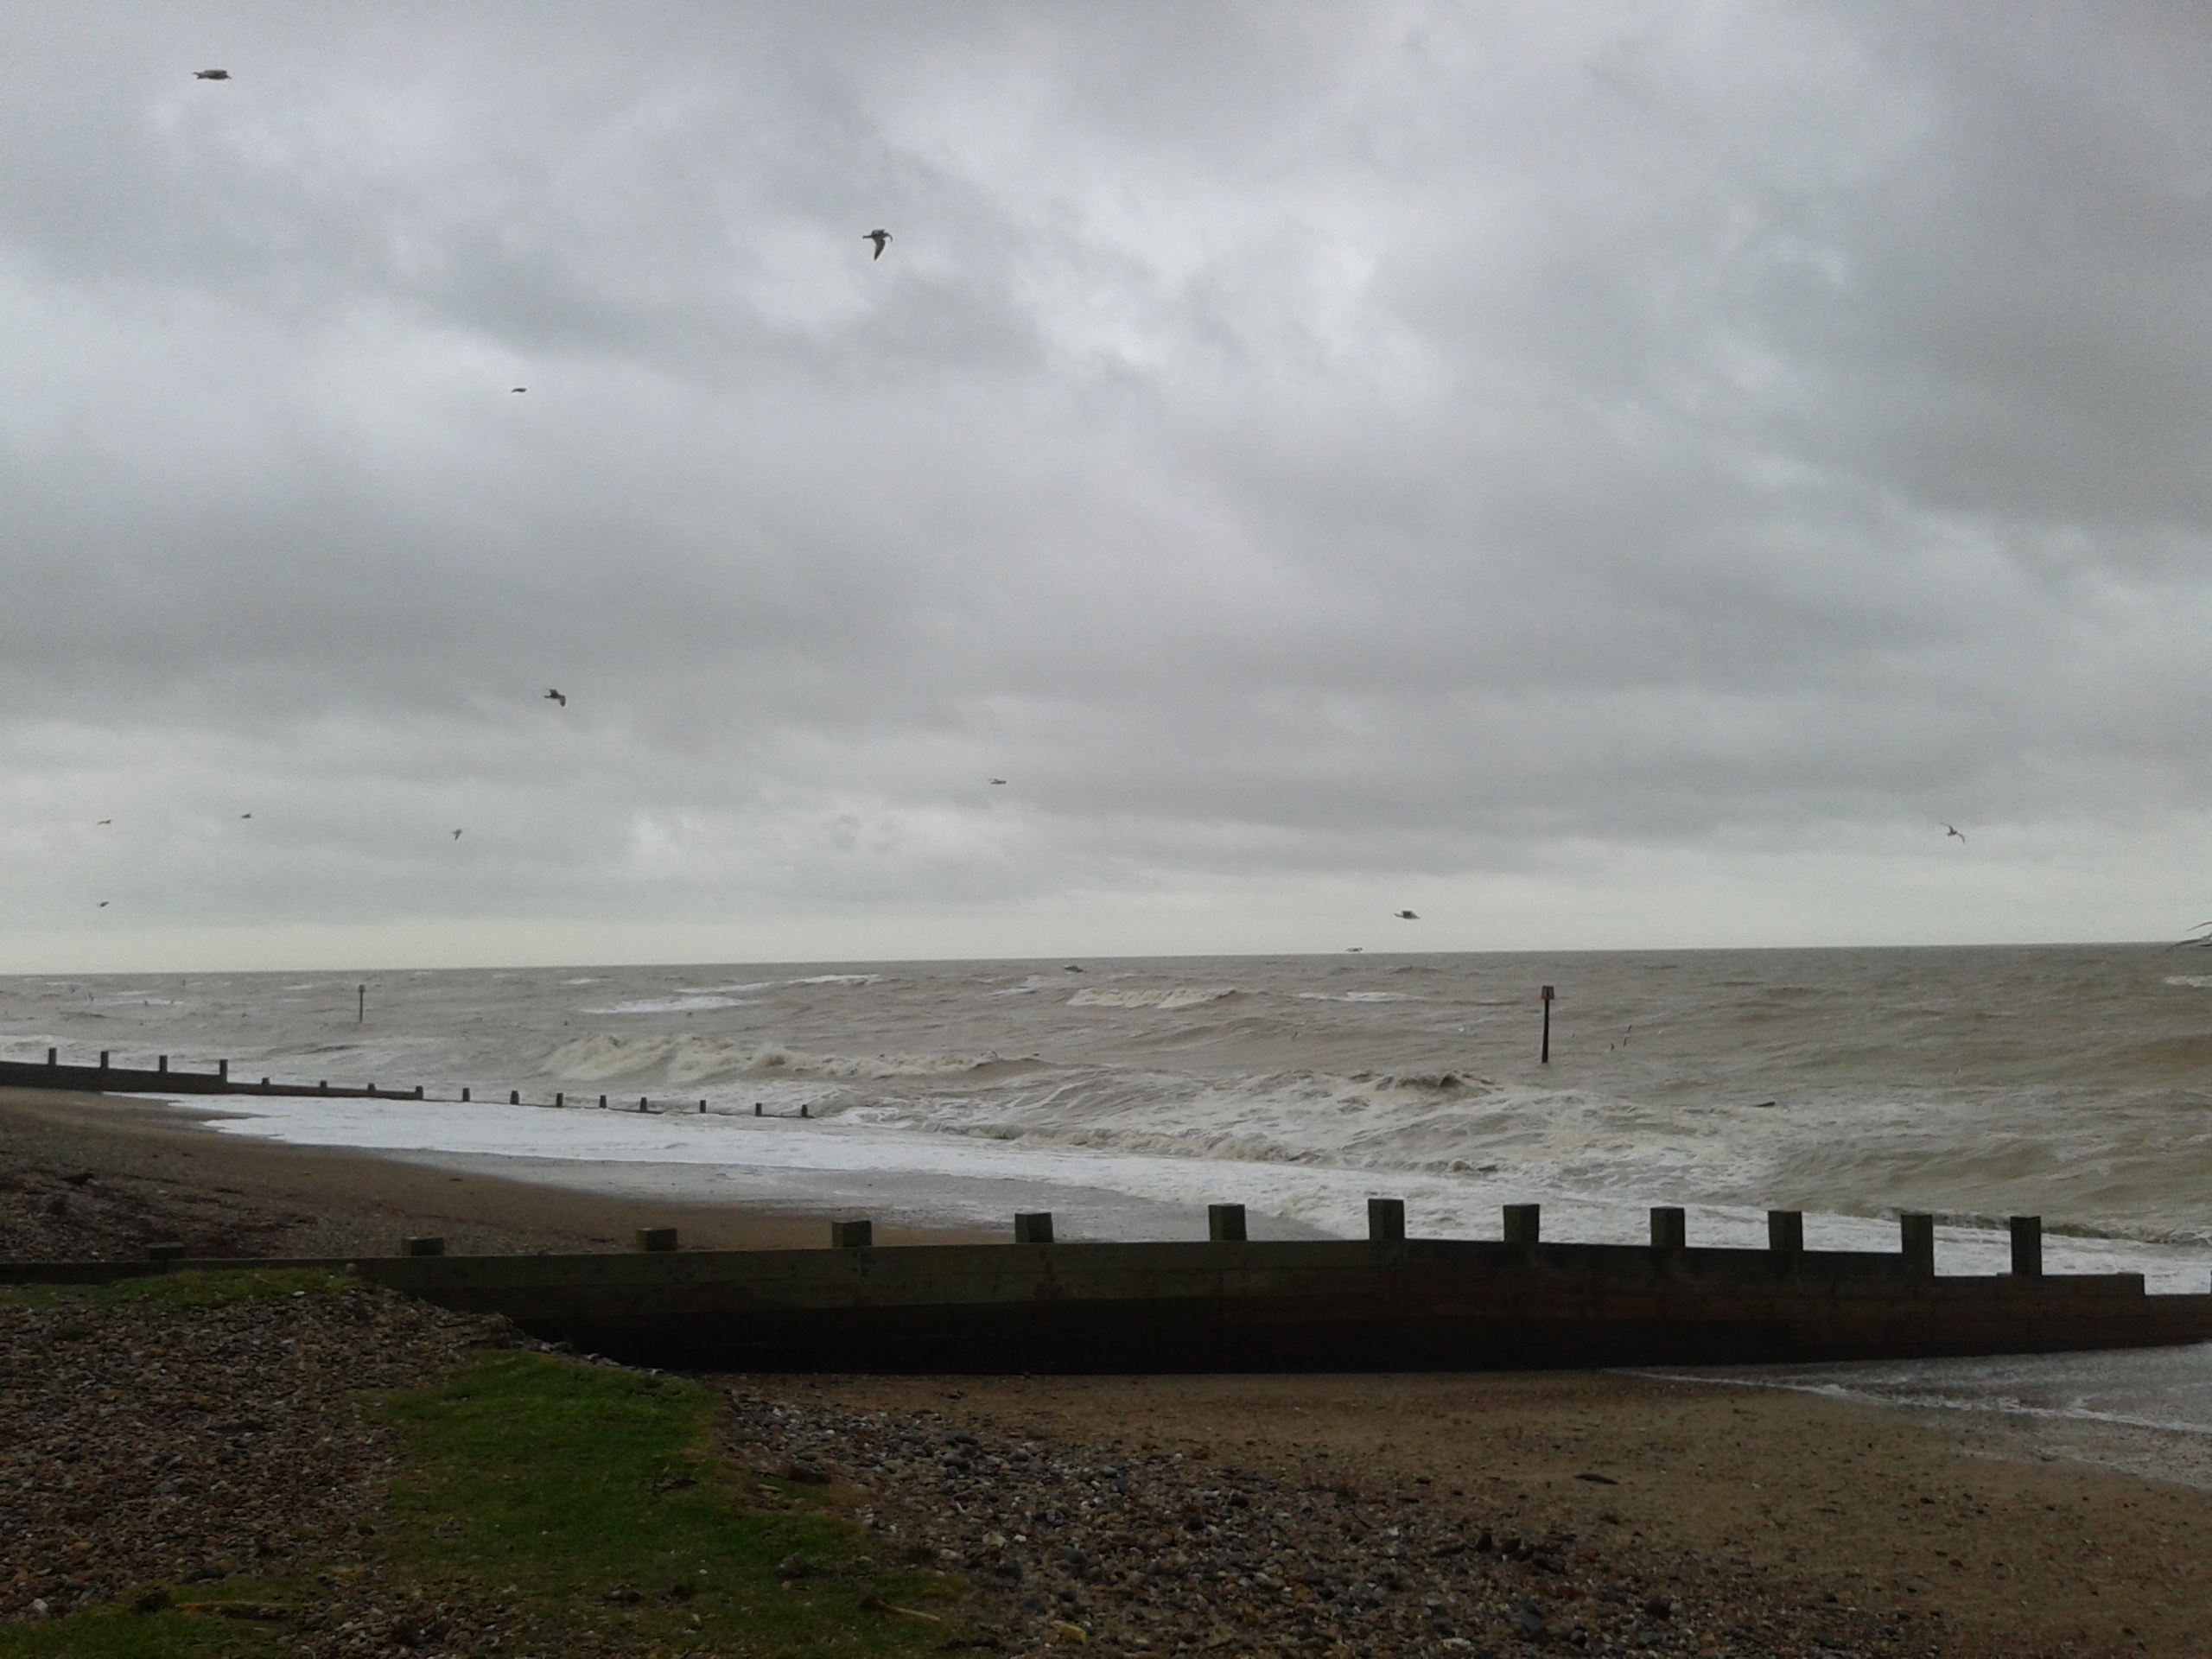 images/Storm_over_Seaford_Beach_31_December 2013.jpg